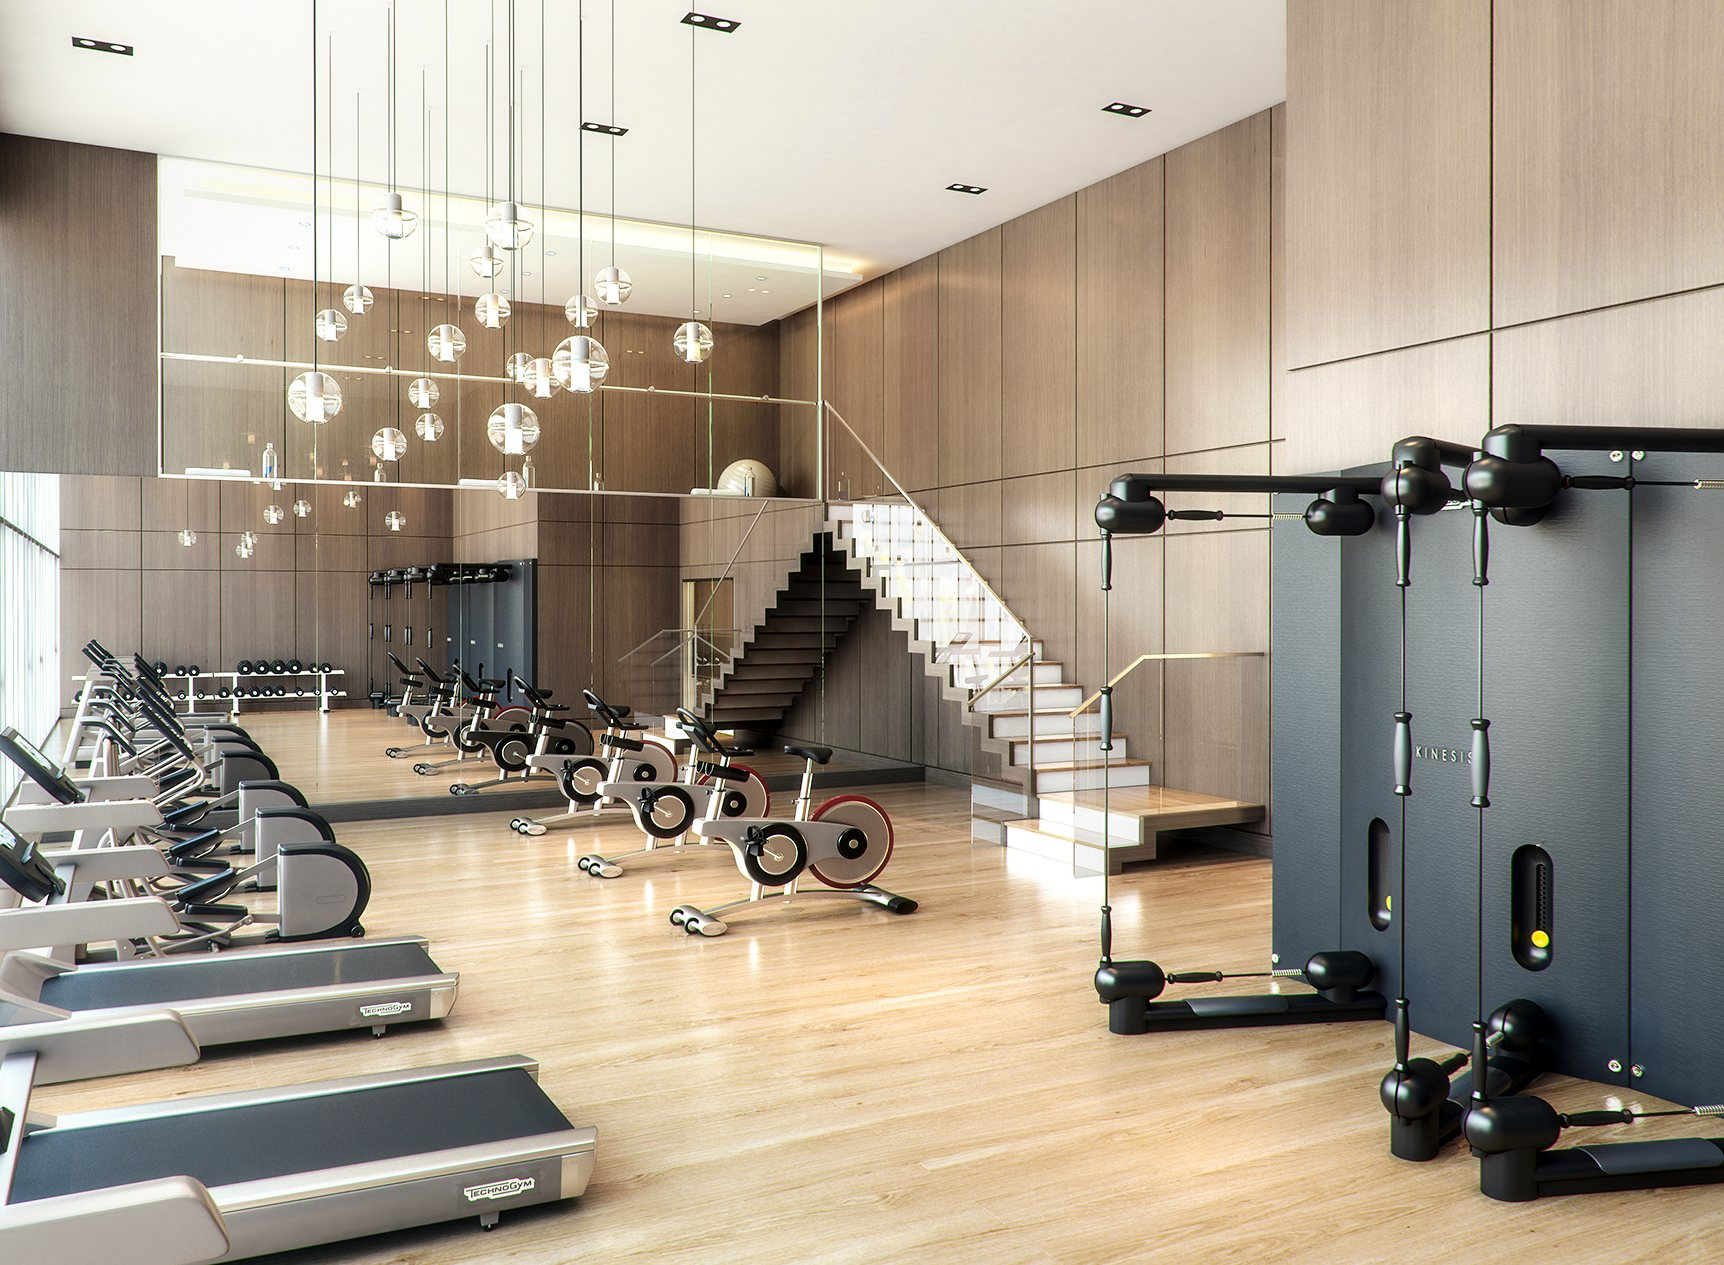 Awesome Apartment Amenities - Gym